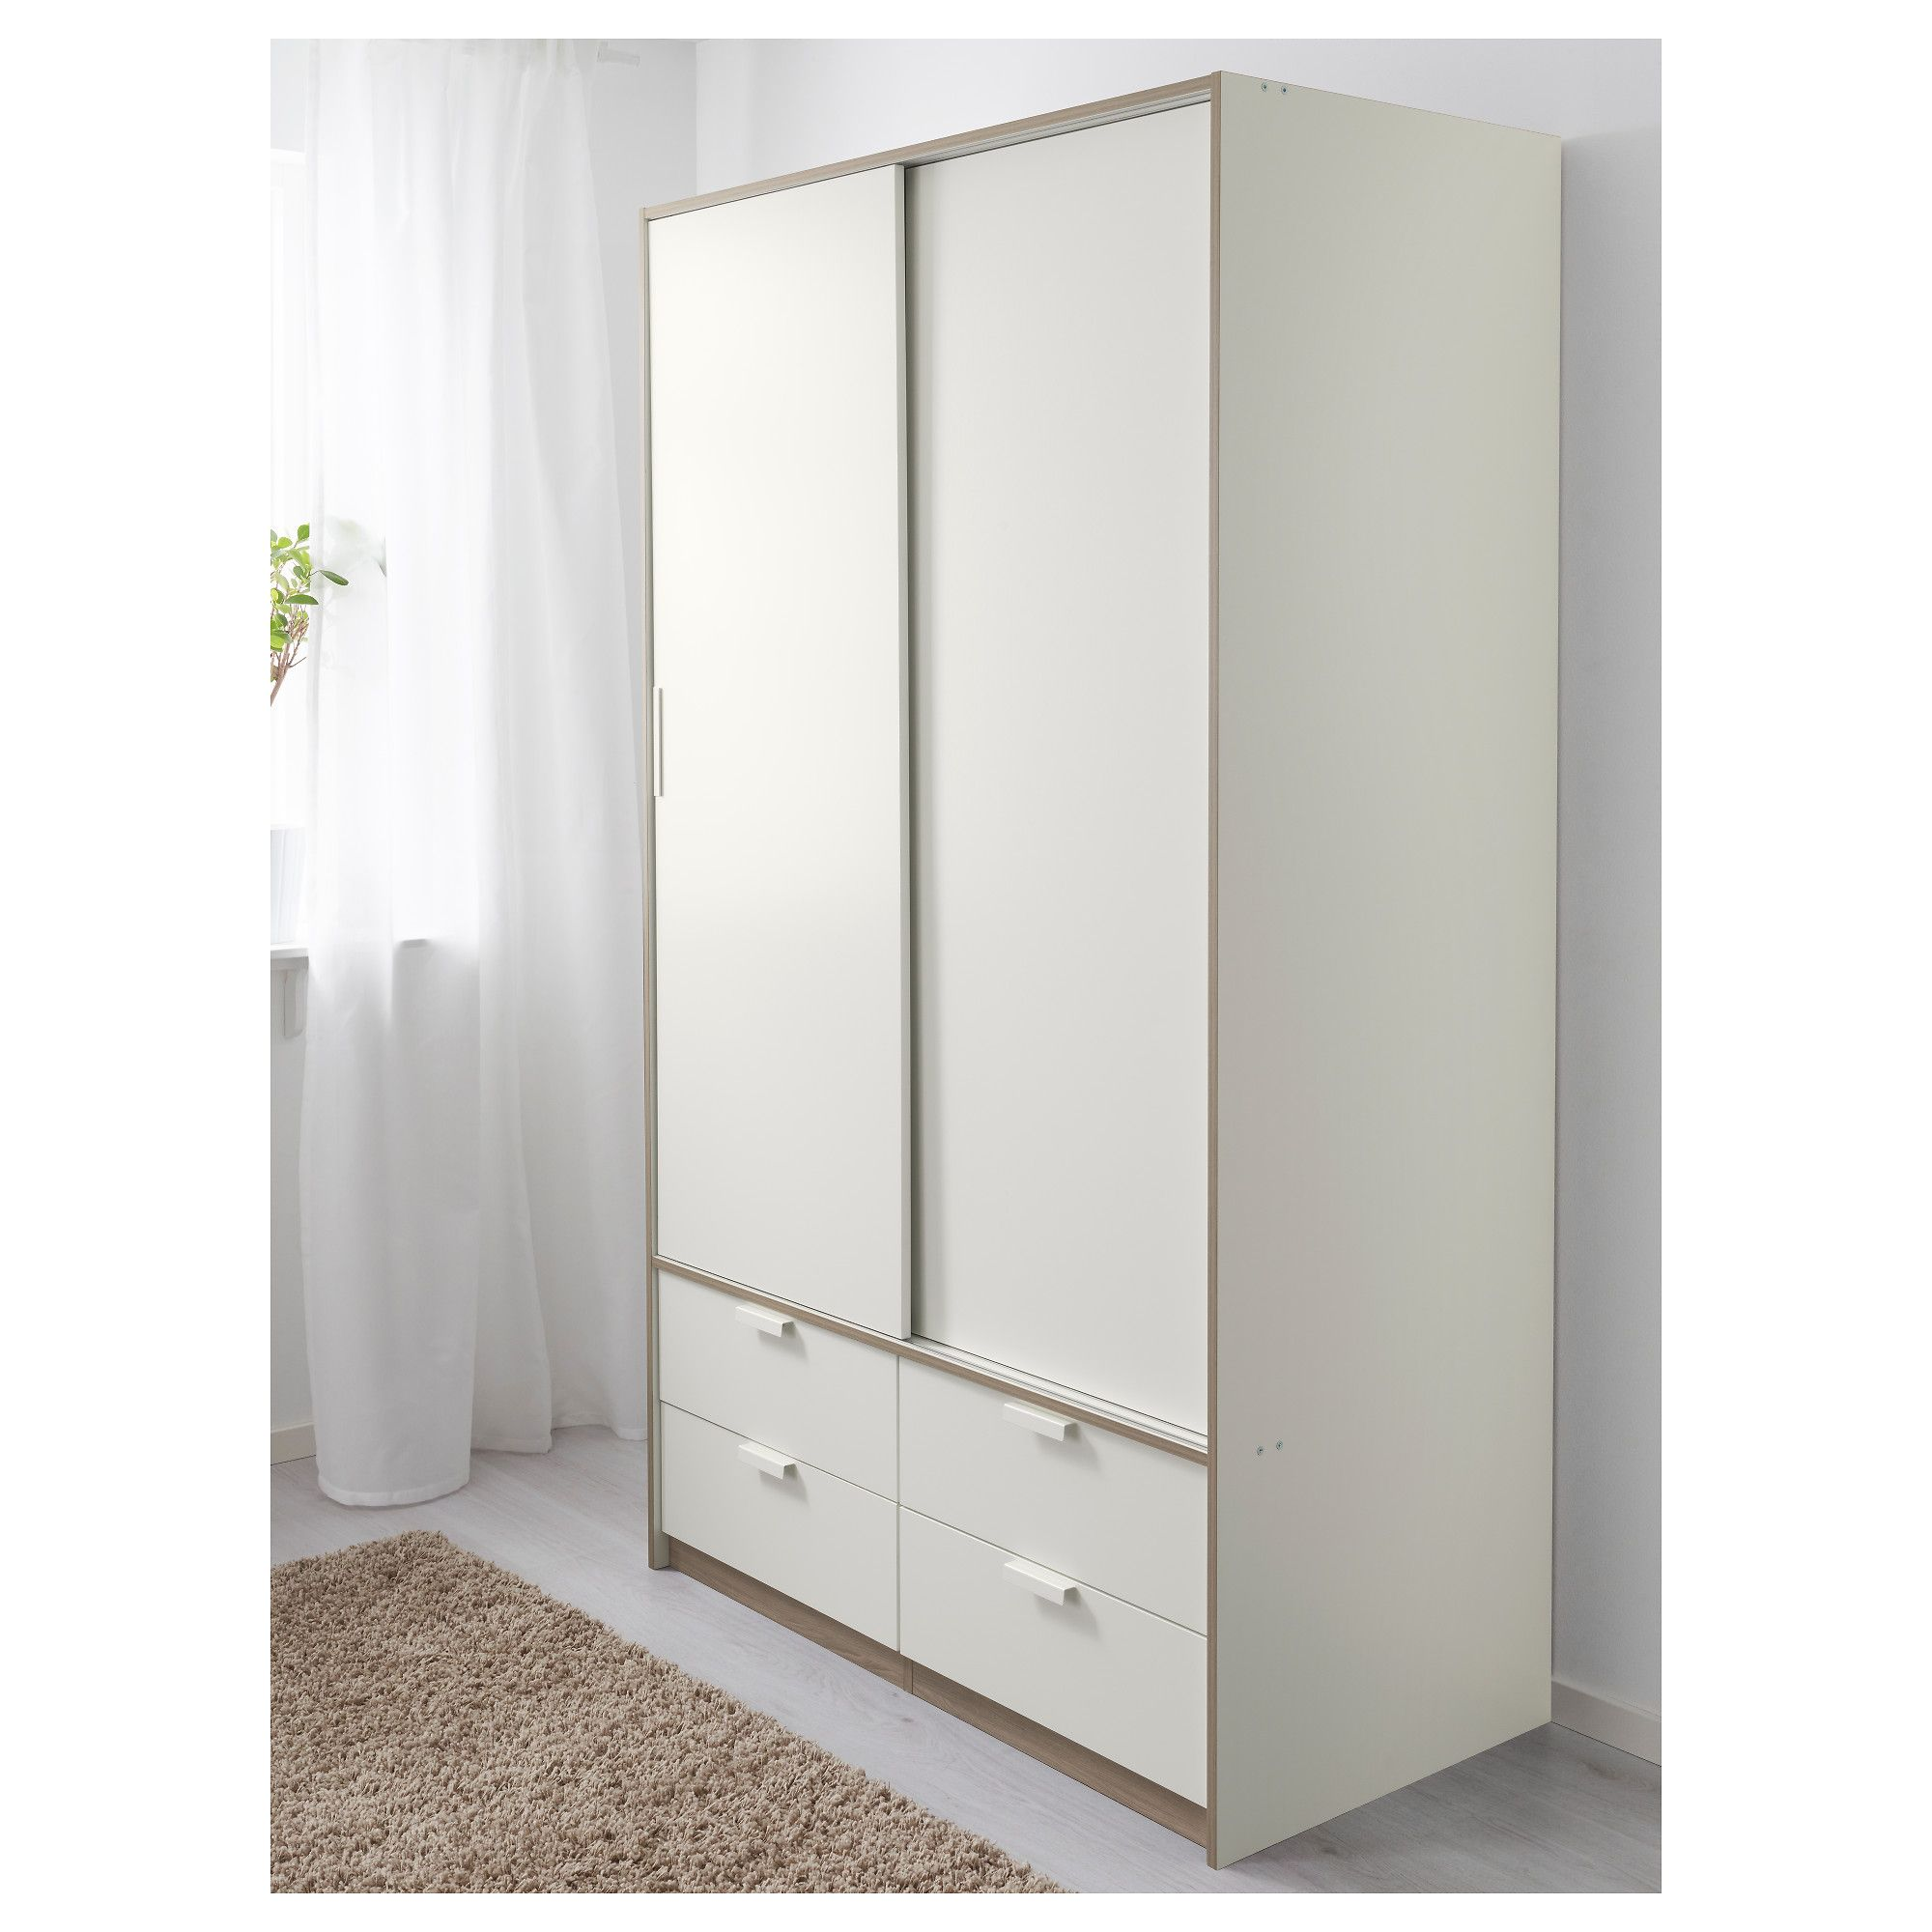 wardrobe cabinet freestanding cabinets narrow l cabinetsnarrow free care standing awesome